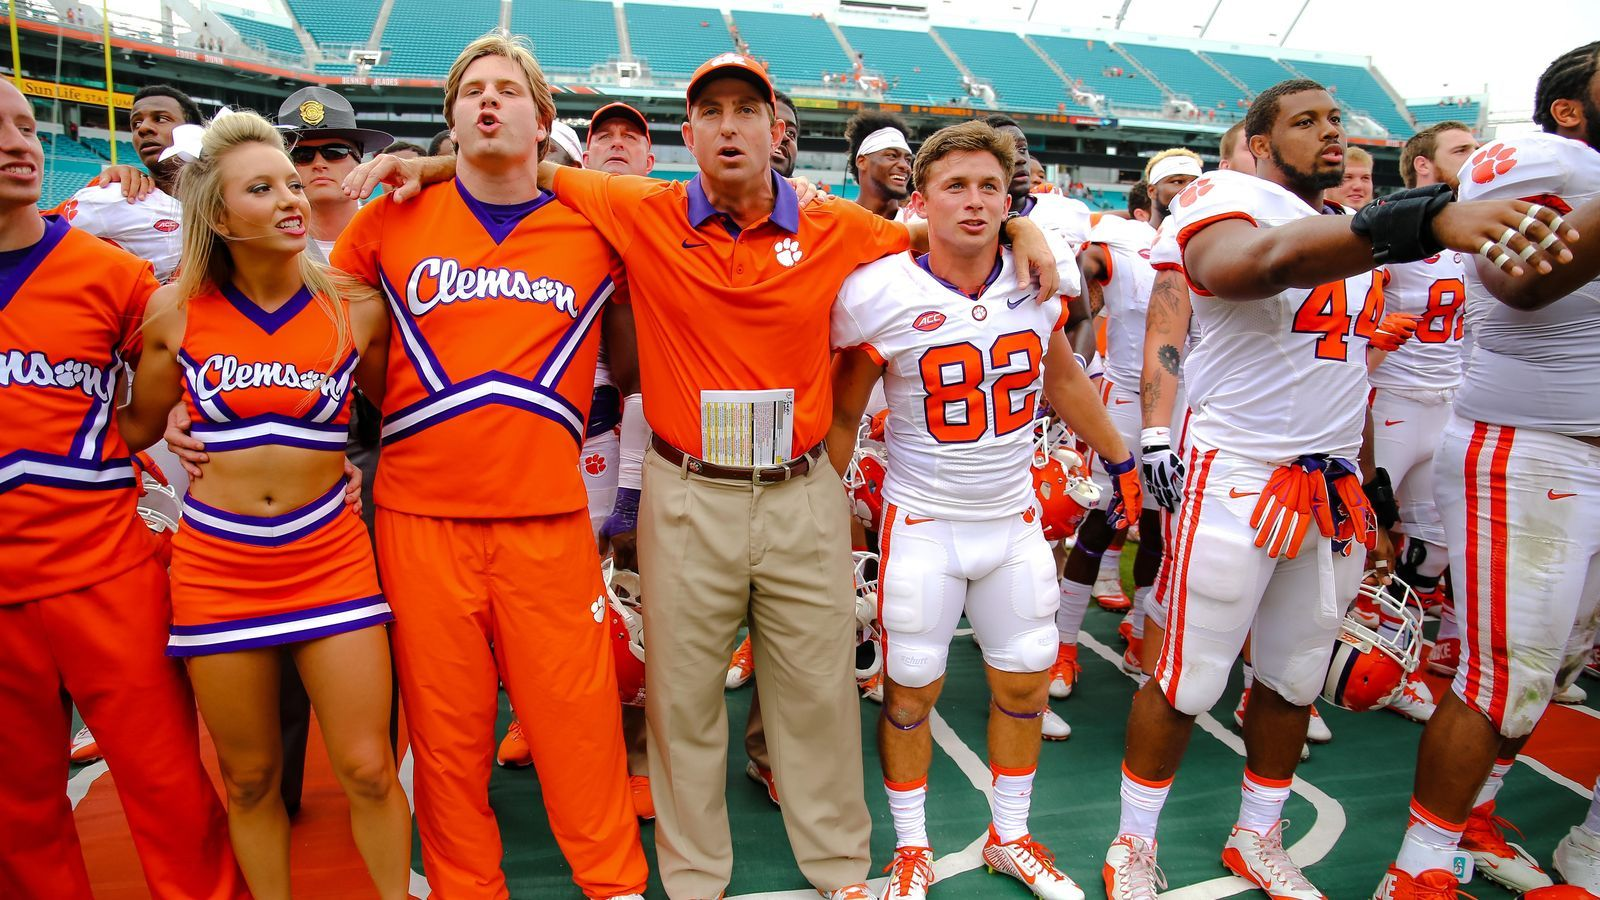 Clemson jumps to no 2 in composite top 25 college